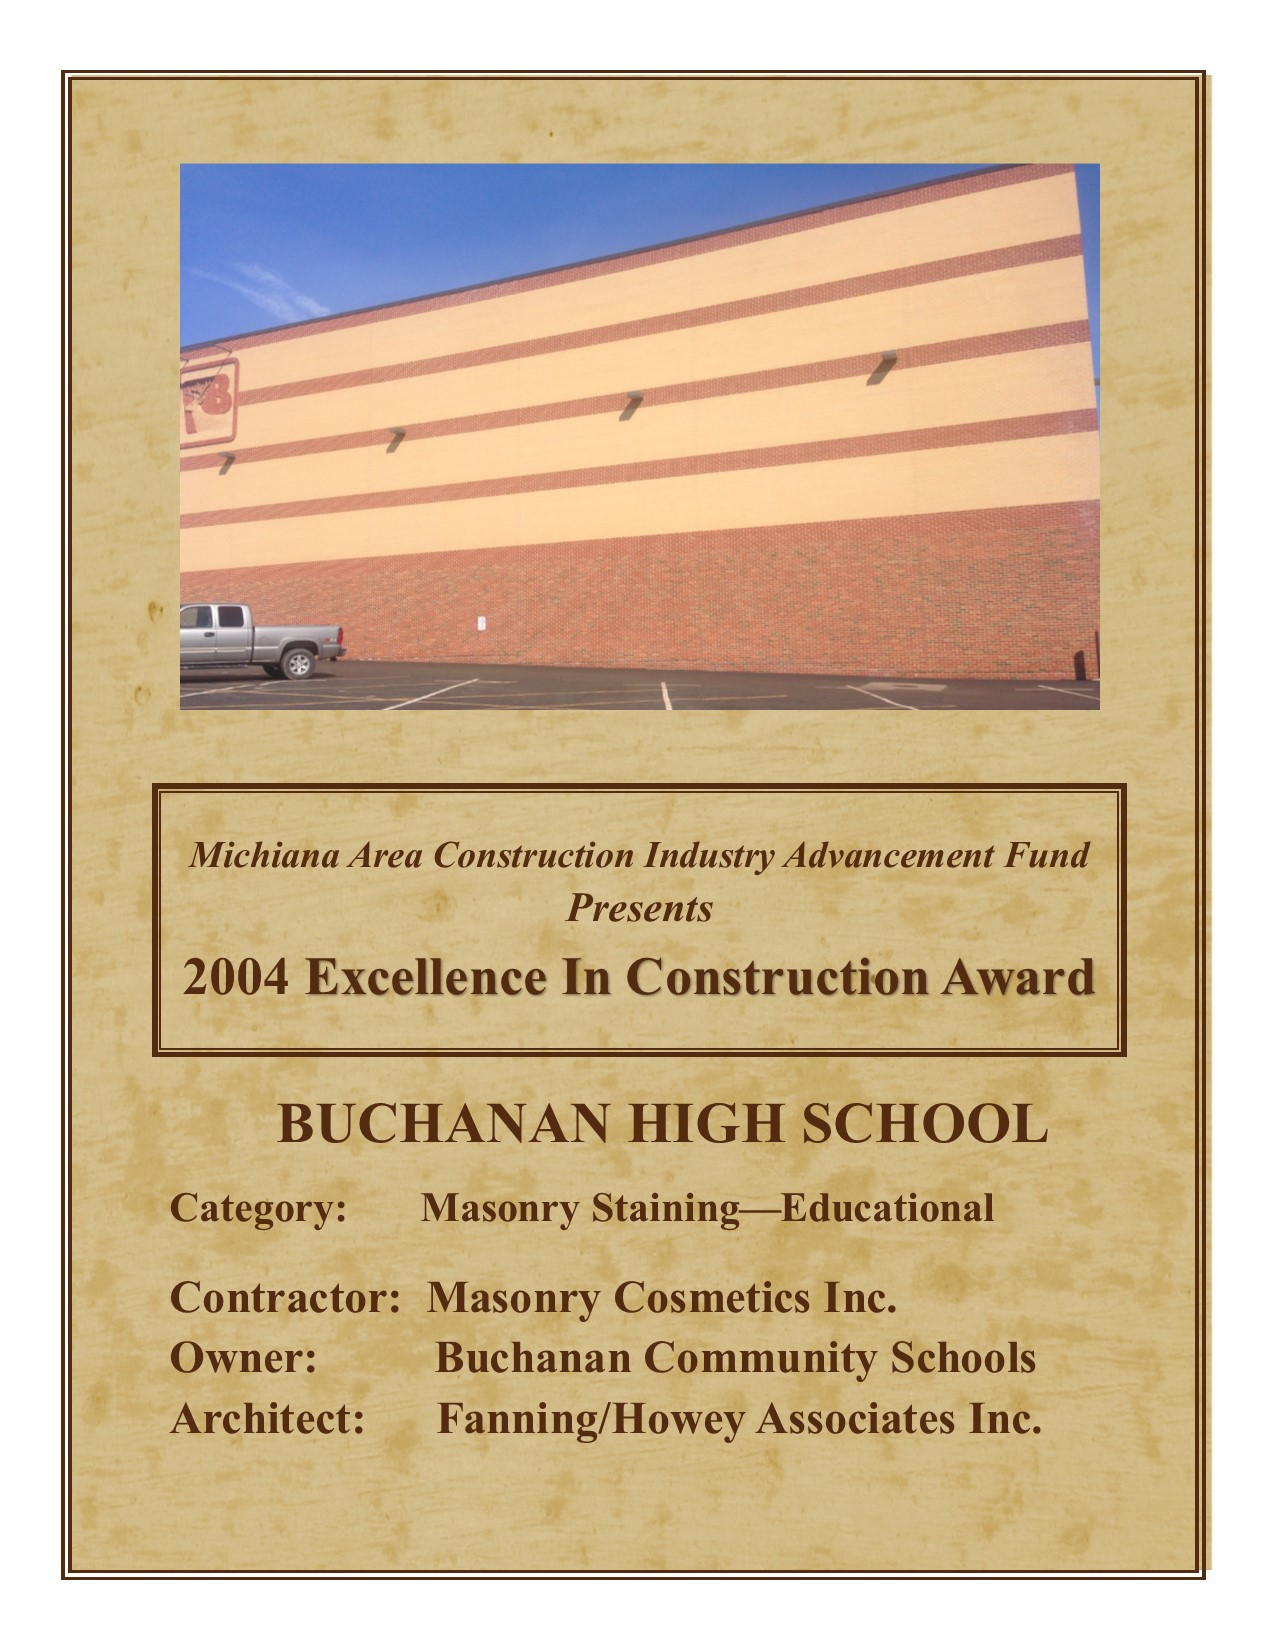 '04 Excellence in Construction Award